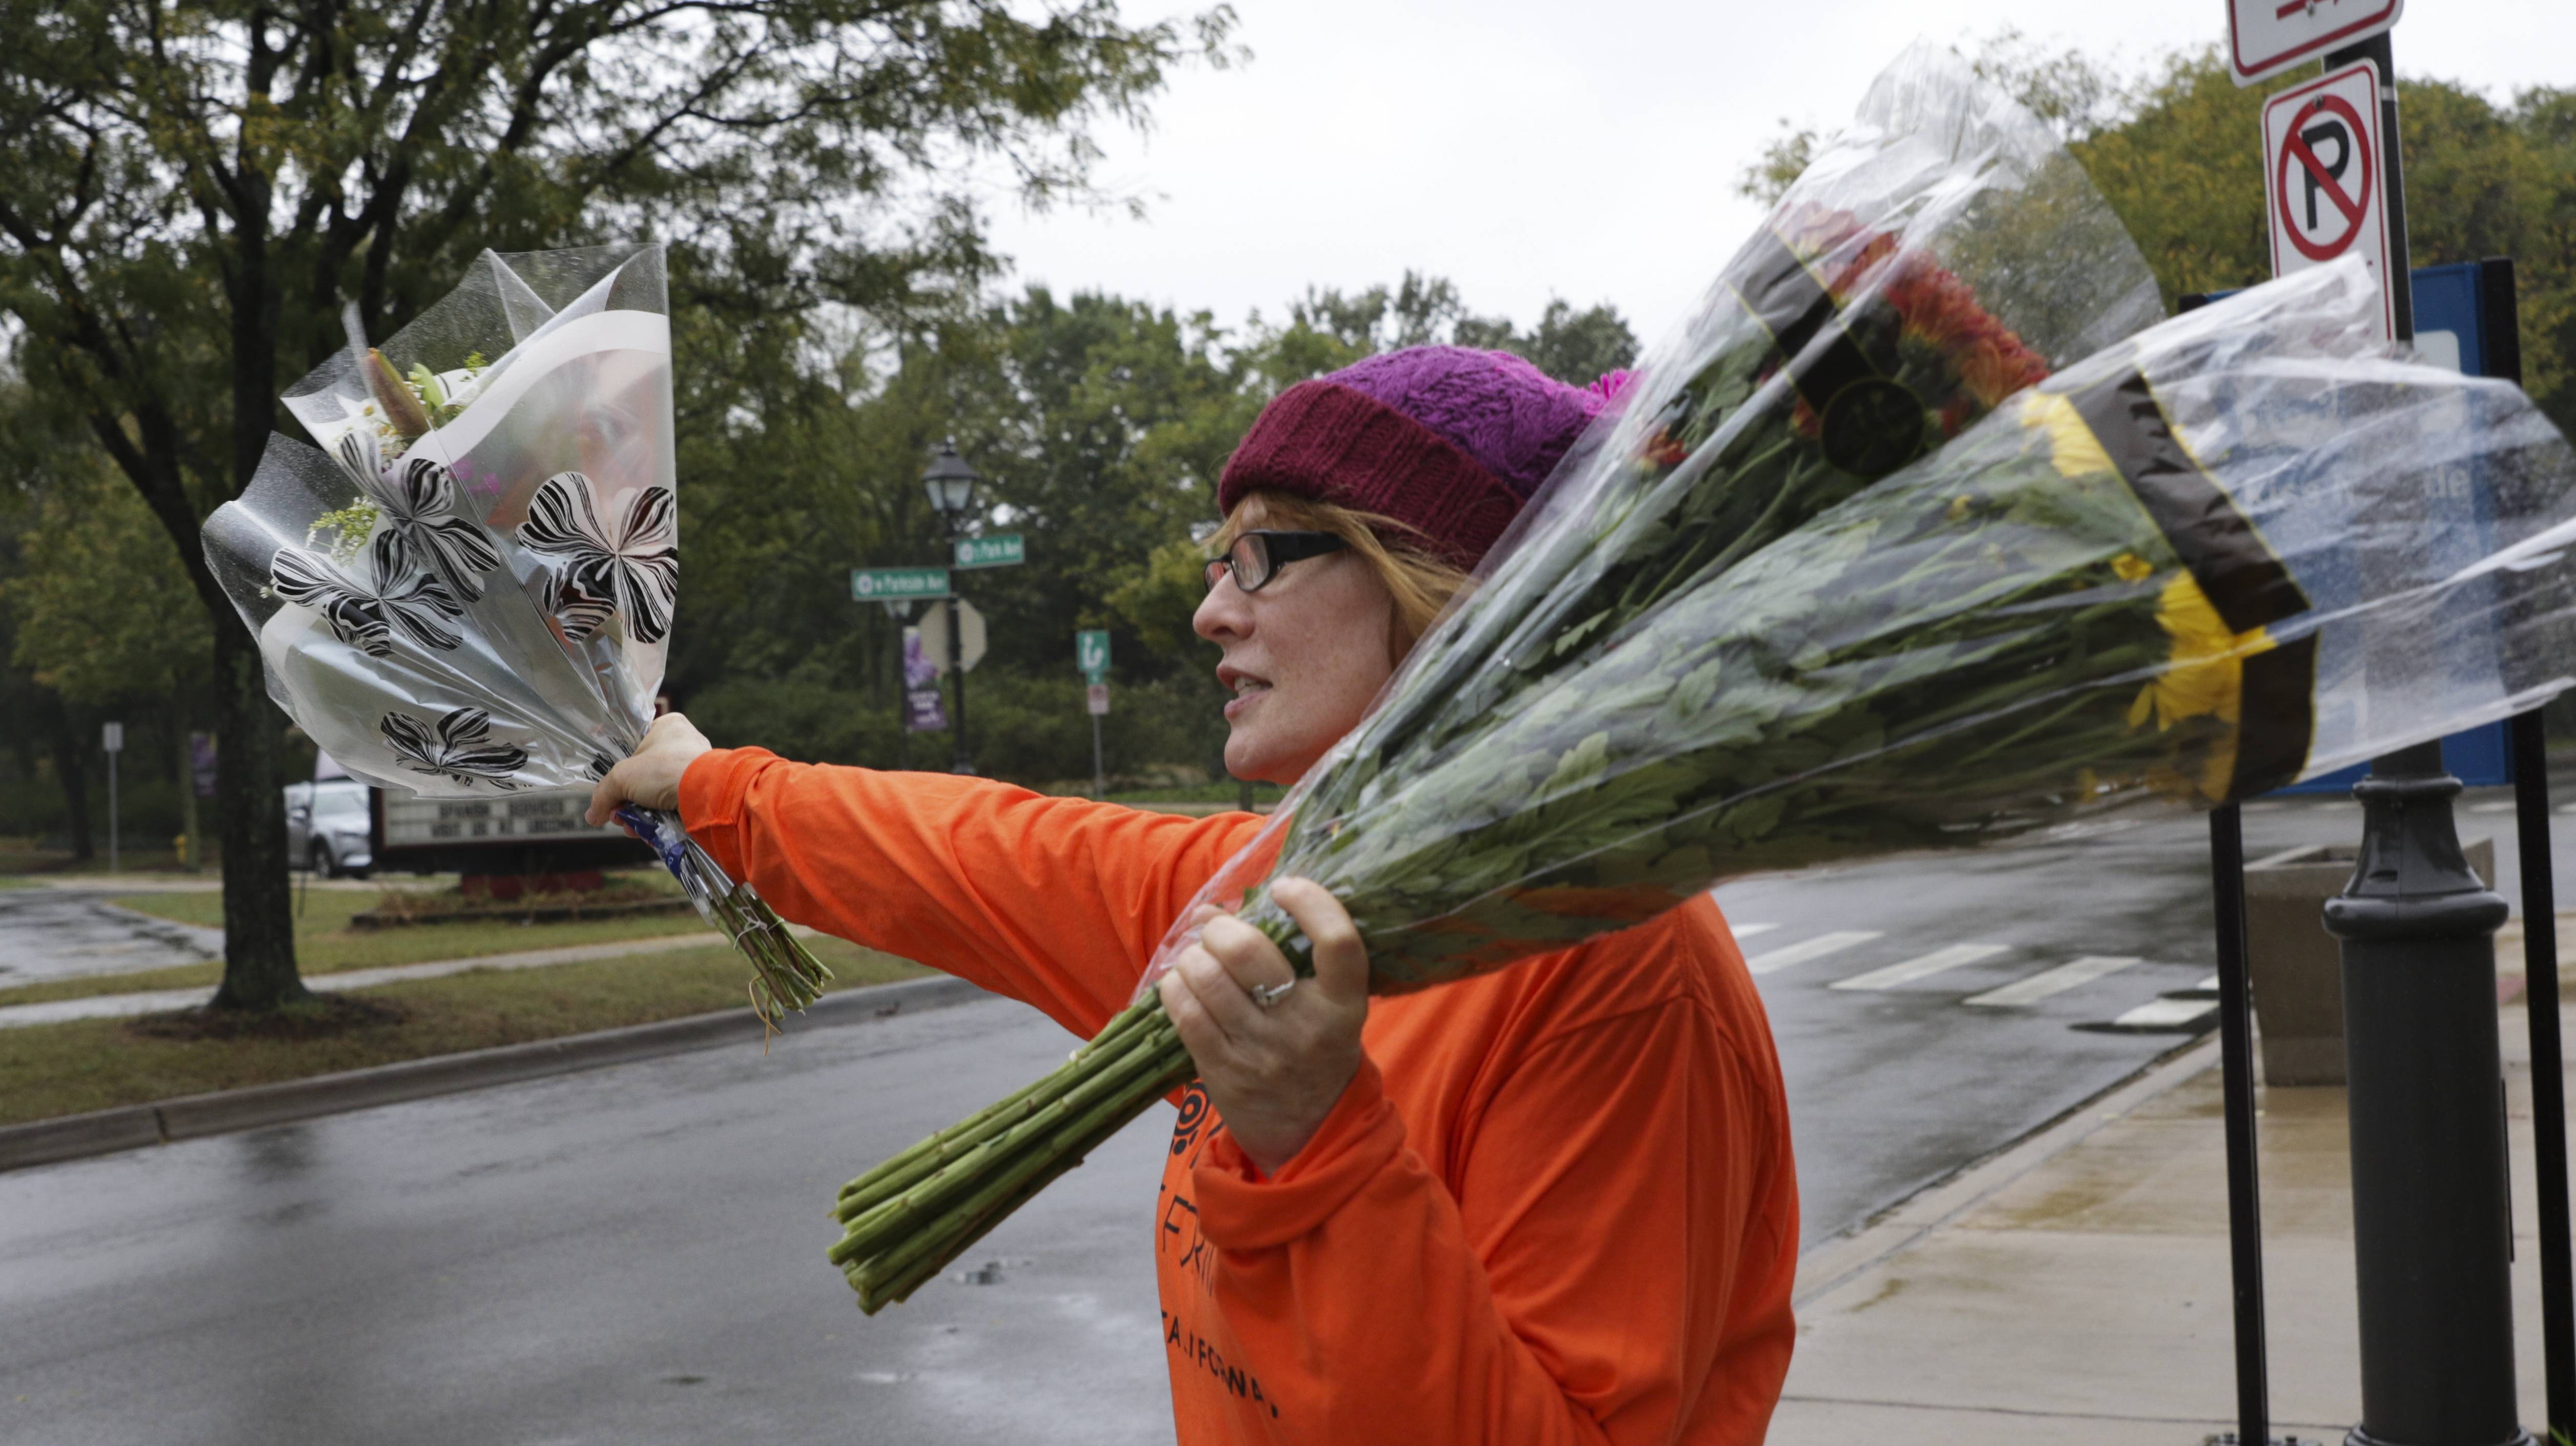 Lois Bafetti from Phillip's Flowers in Lombard hands out free bouquets Wednesday at the Lombard Metra station as part of a Petal It Forward campaign to spread happiness.